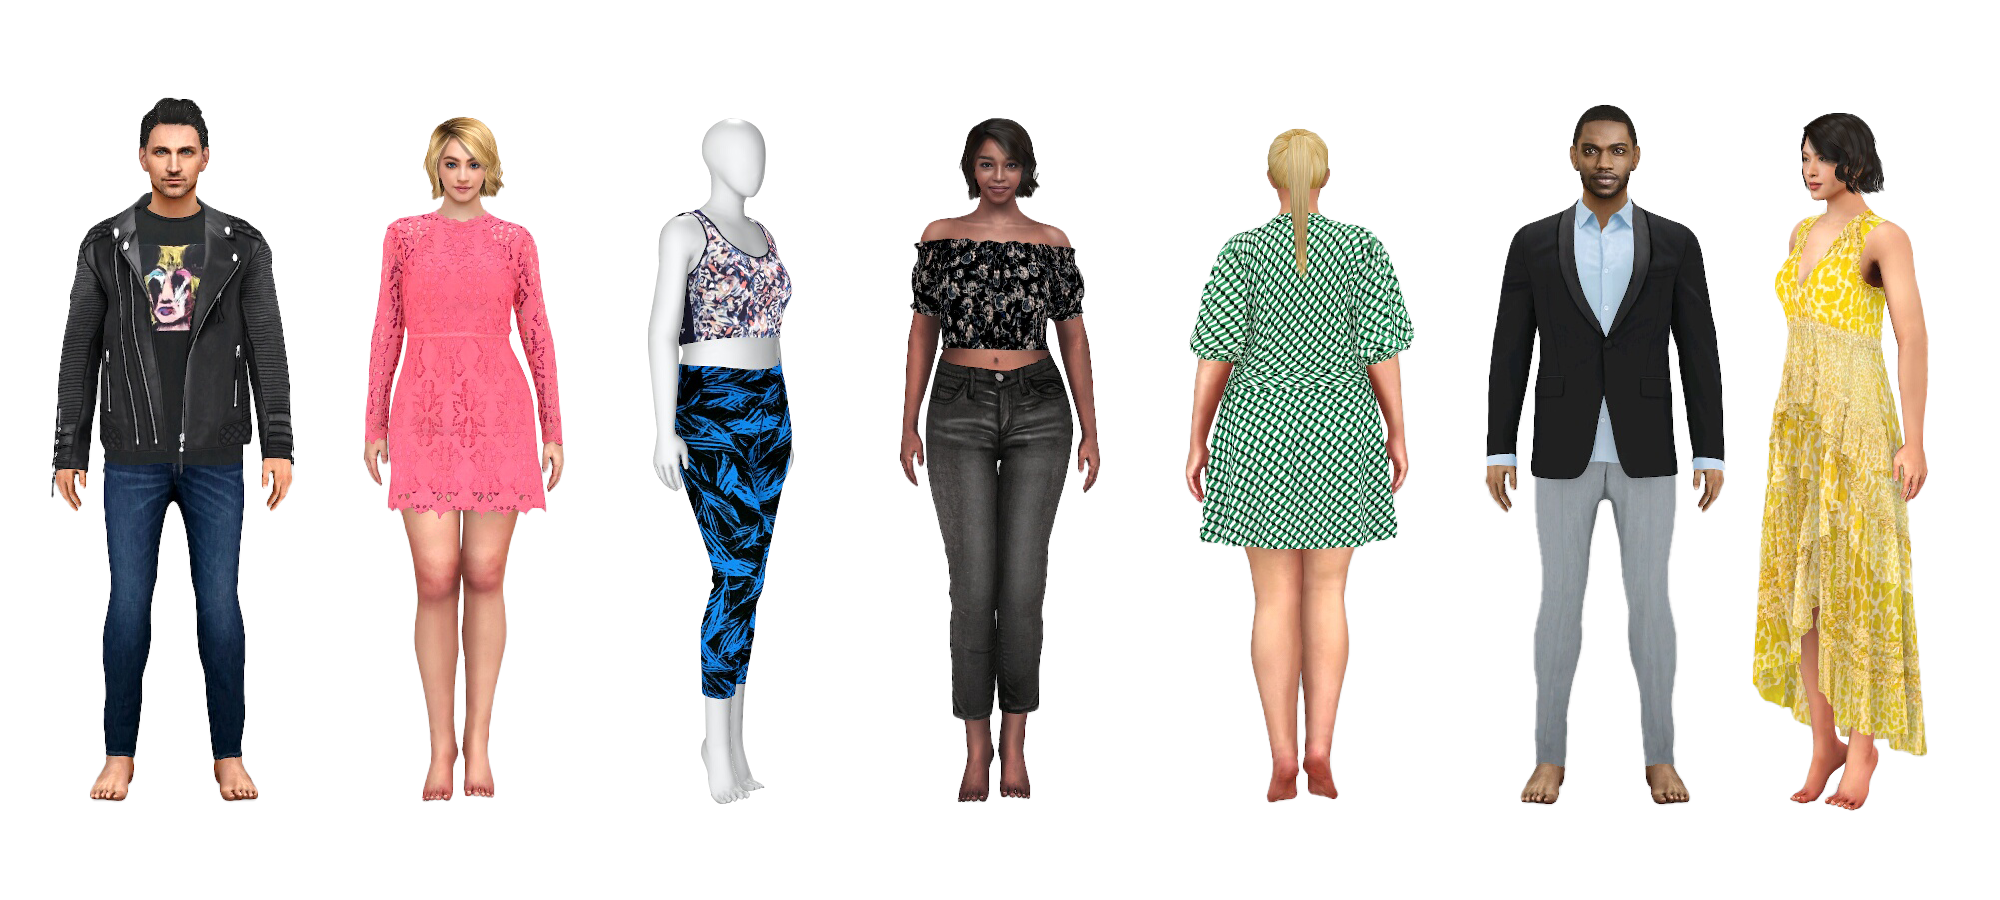 virtual fitting room avatars with differently styled outfits